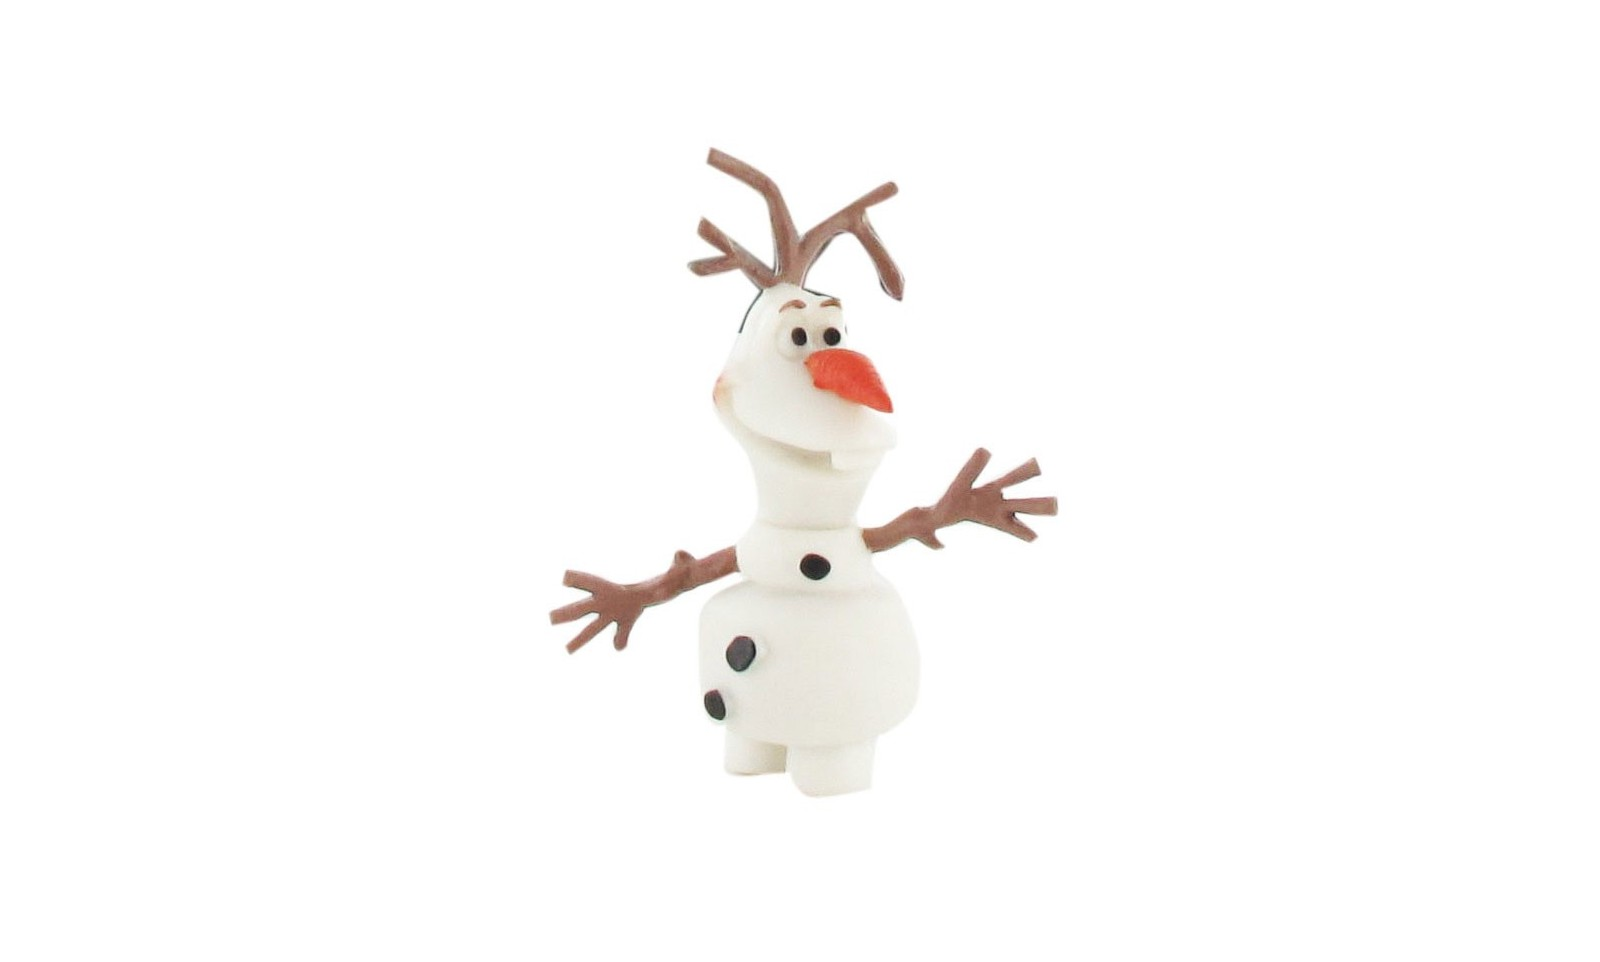 frozen olaf figure 4 5 cm animation movie disney 39 s film. Black Bedroom Furniture Sets. Home Design Ideas